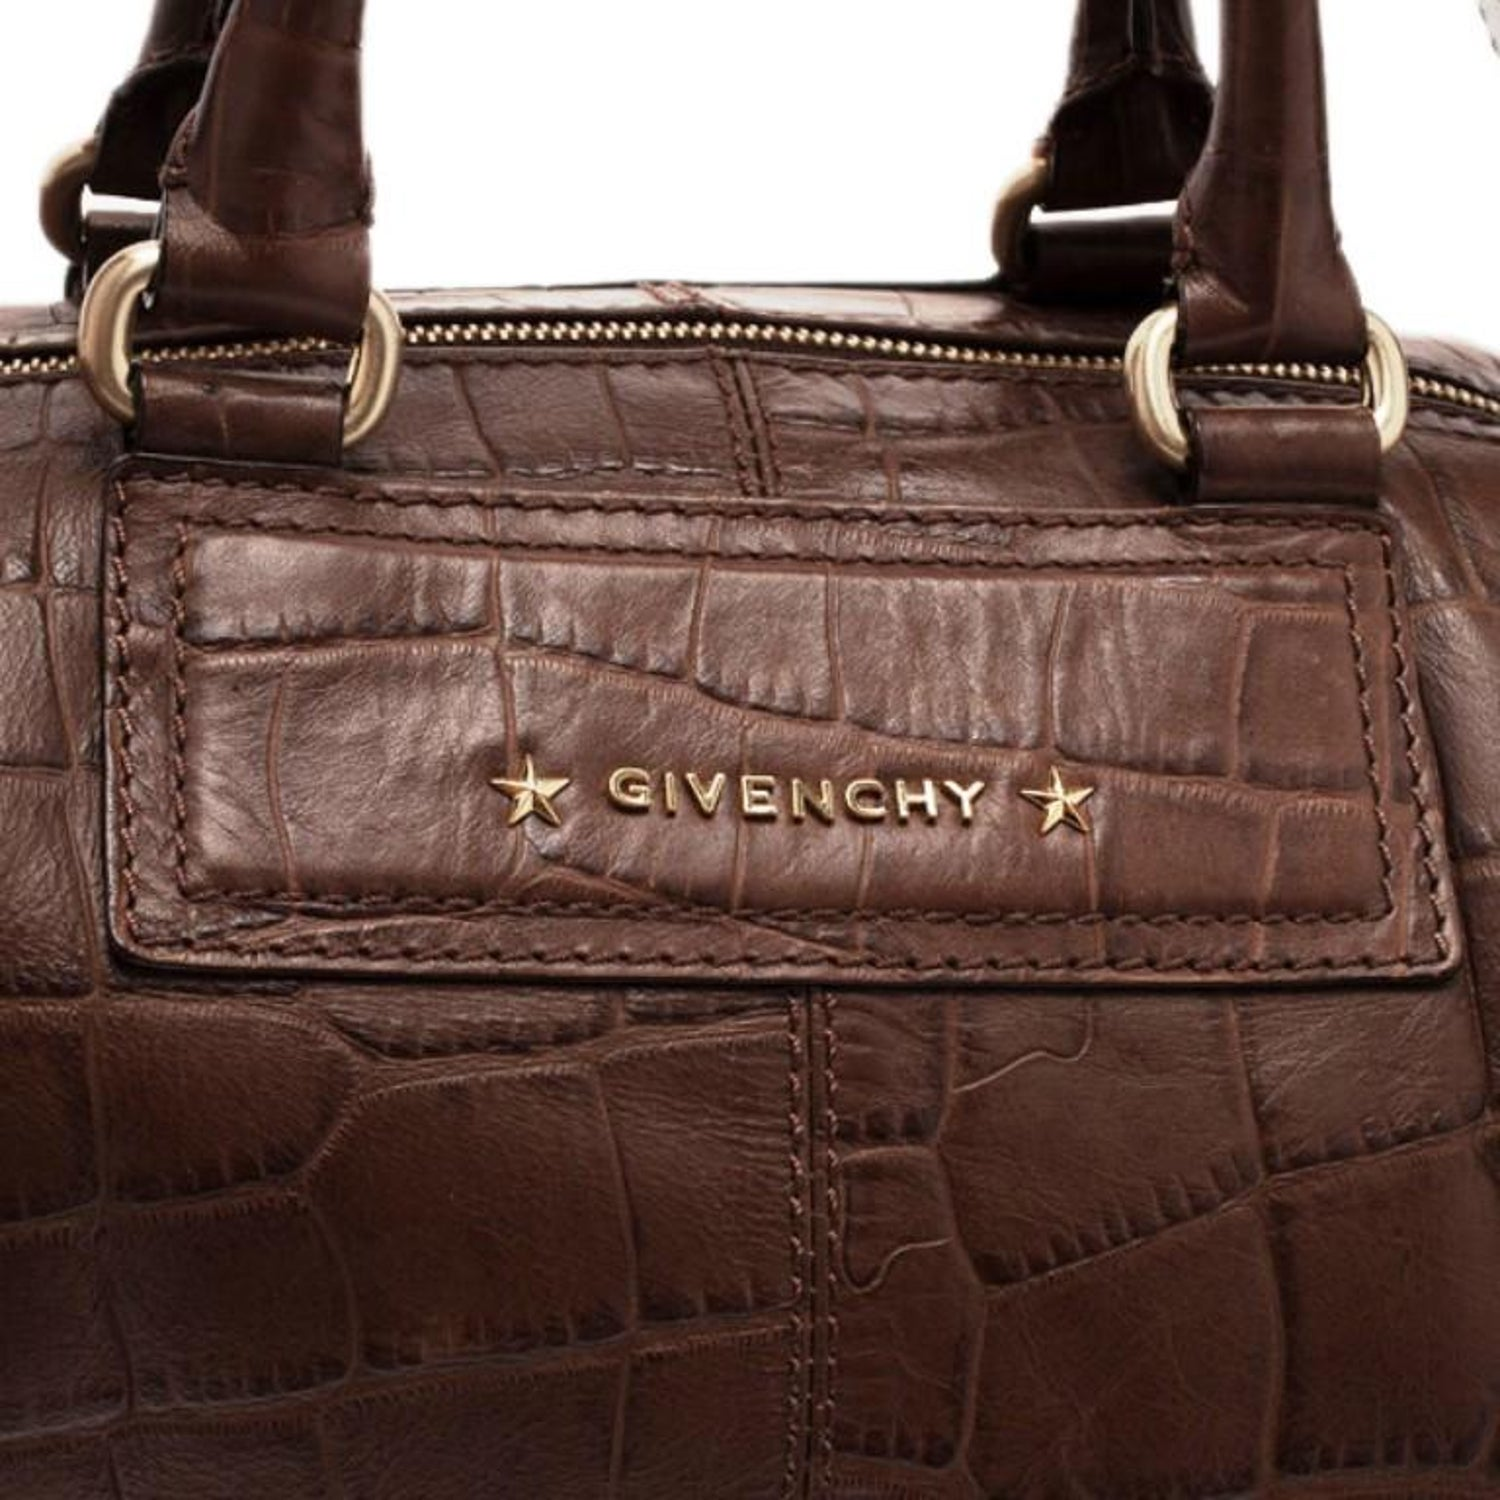 11b9700d2918 Givenchy Brown Croc Embossed Duffle Bag im Angebot bei 1stdibs